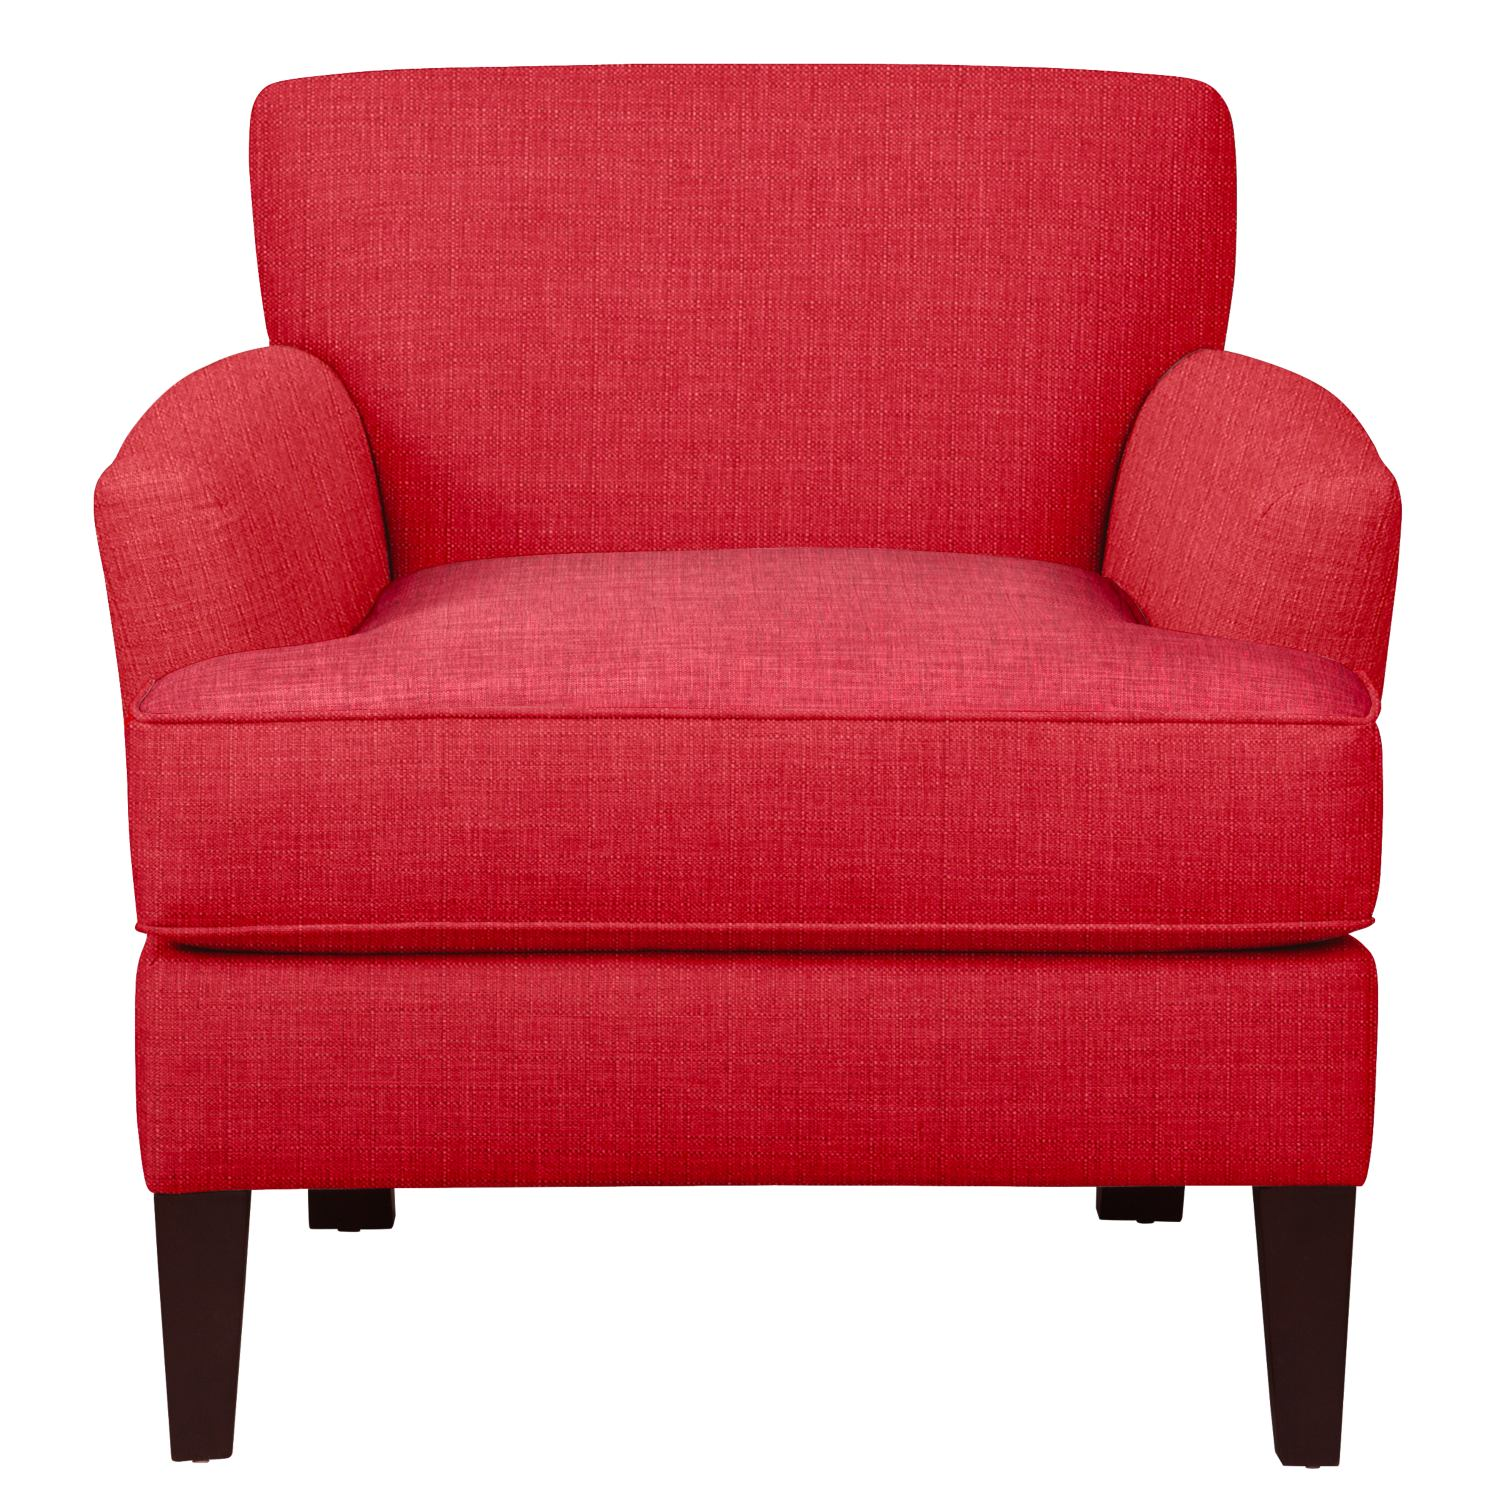 Living Room Furniture - Marcus Chair w/ Depalma Cherry Fabric